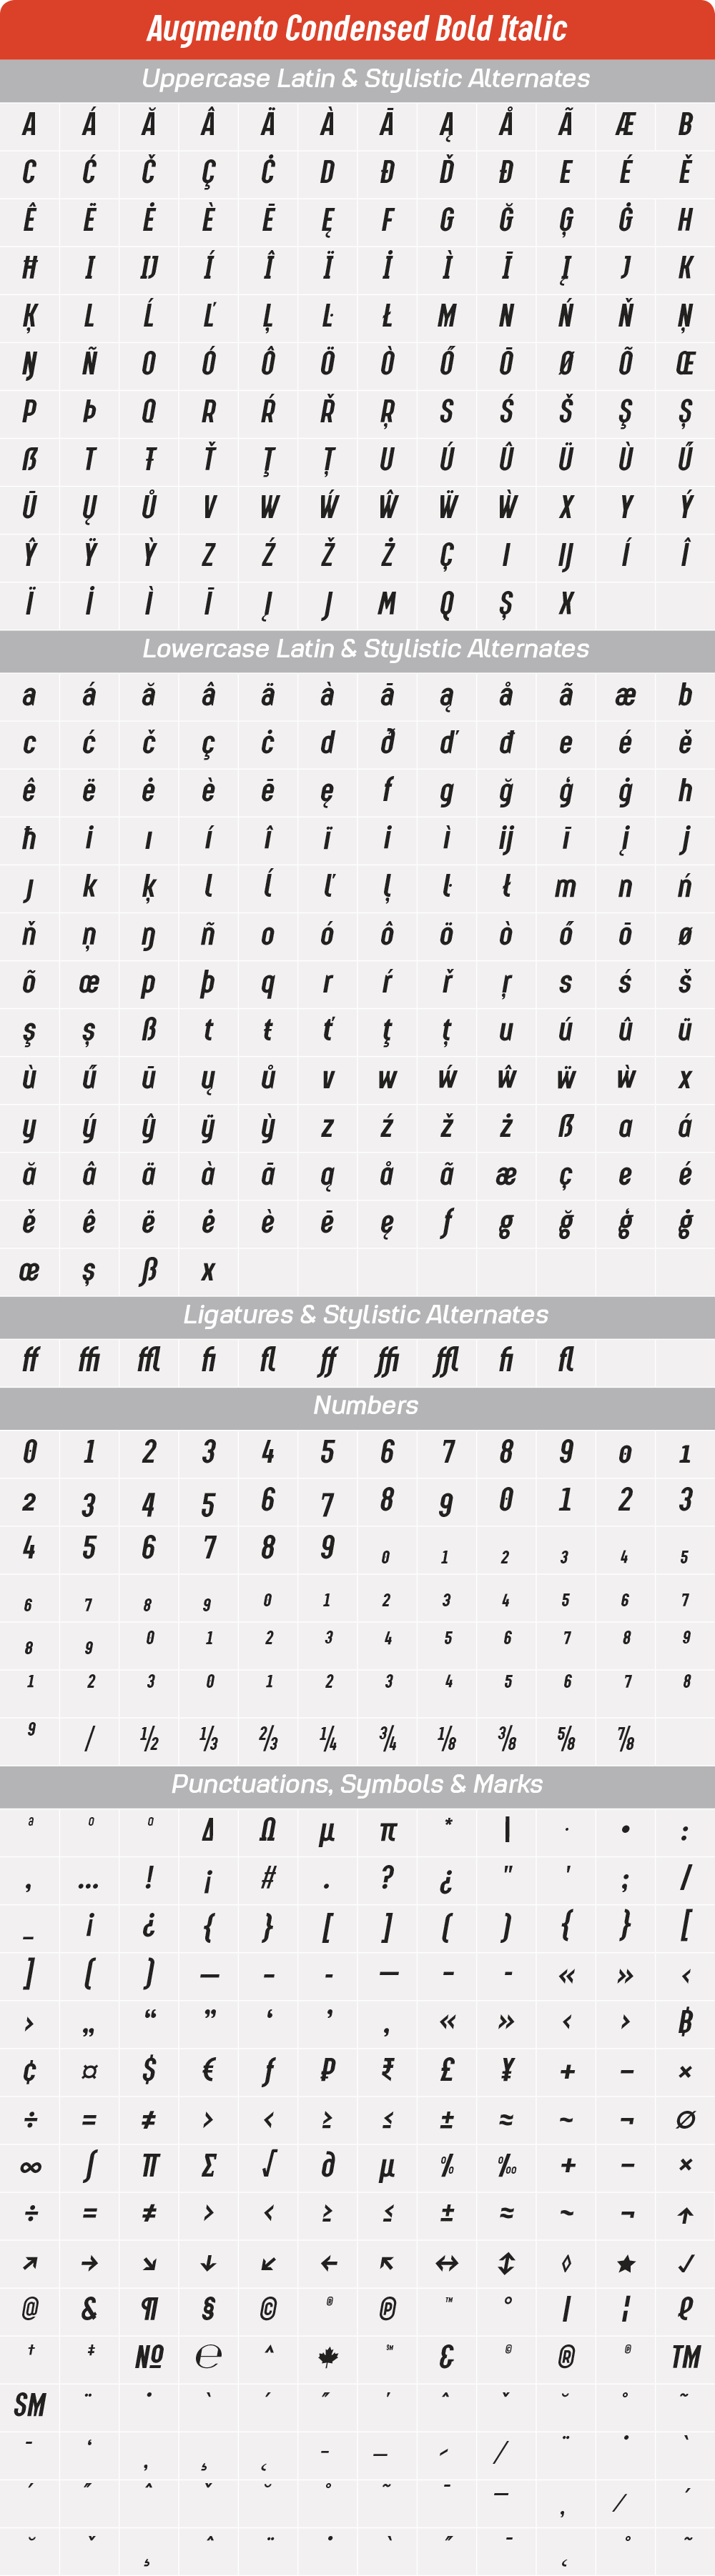 Condensed Bold ItalicAugmento-GlyphTable.png